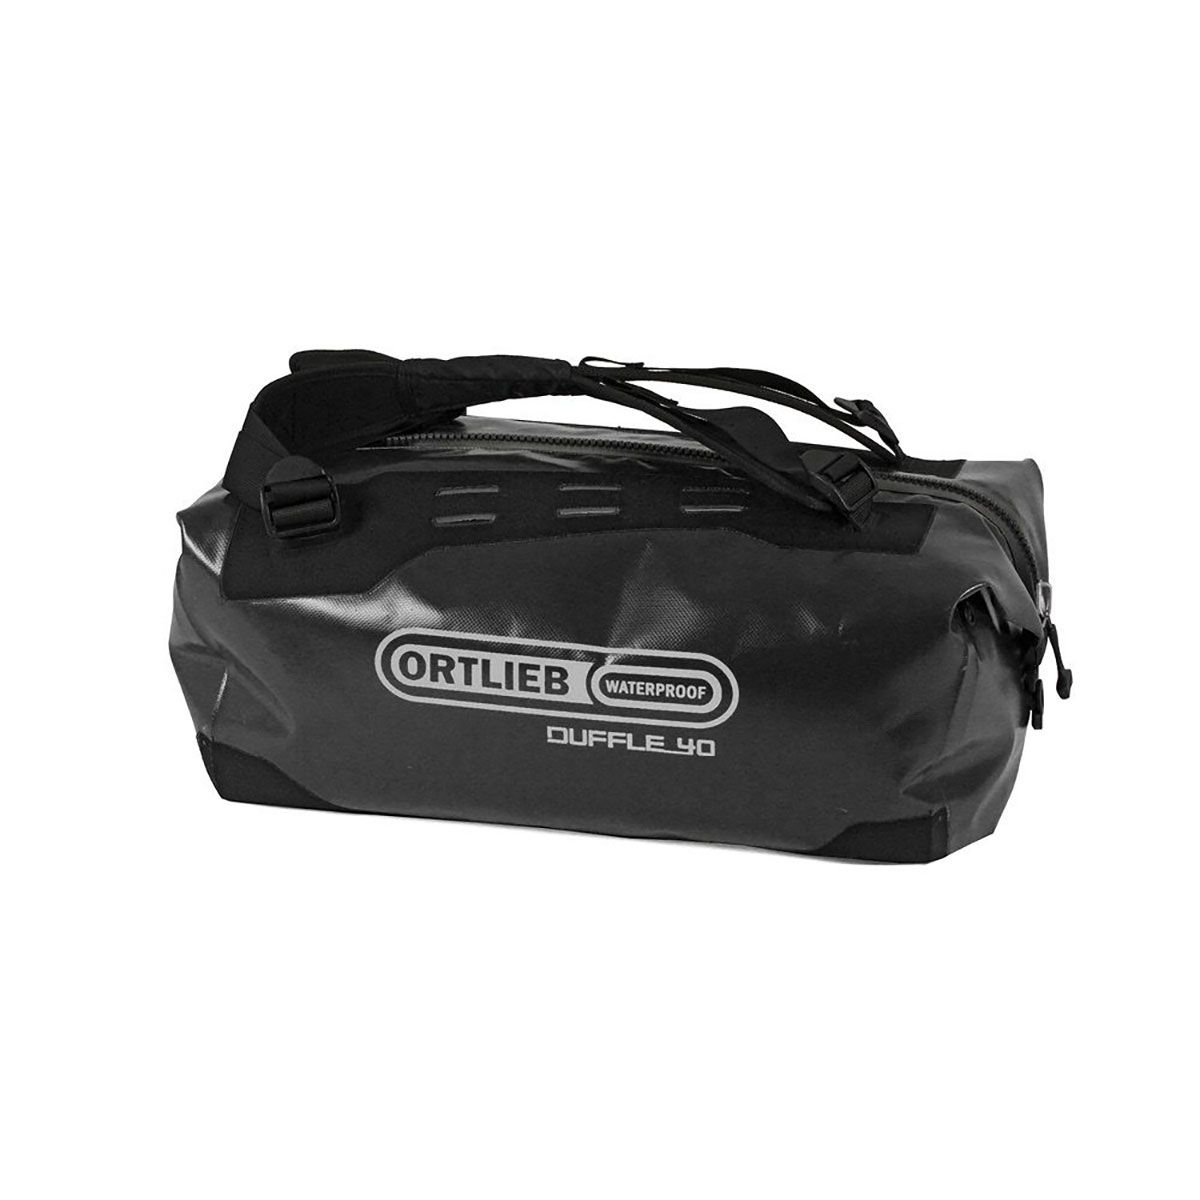 DUFFLE expedition and travel bag